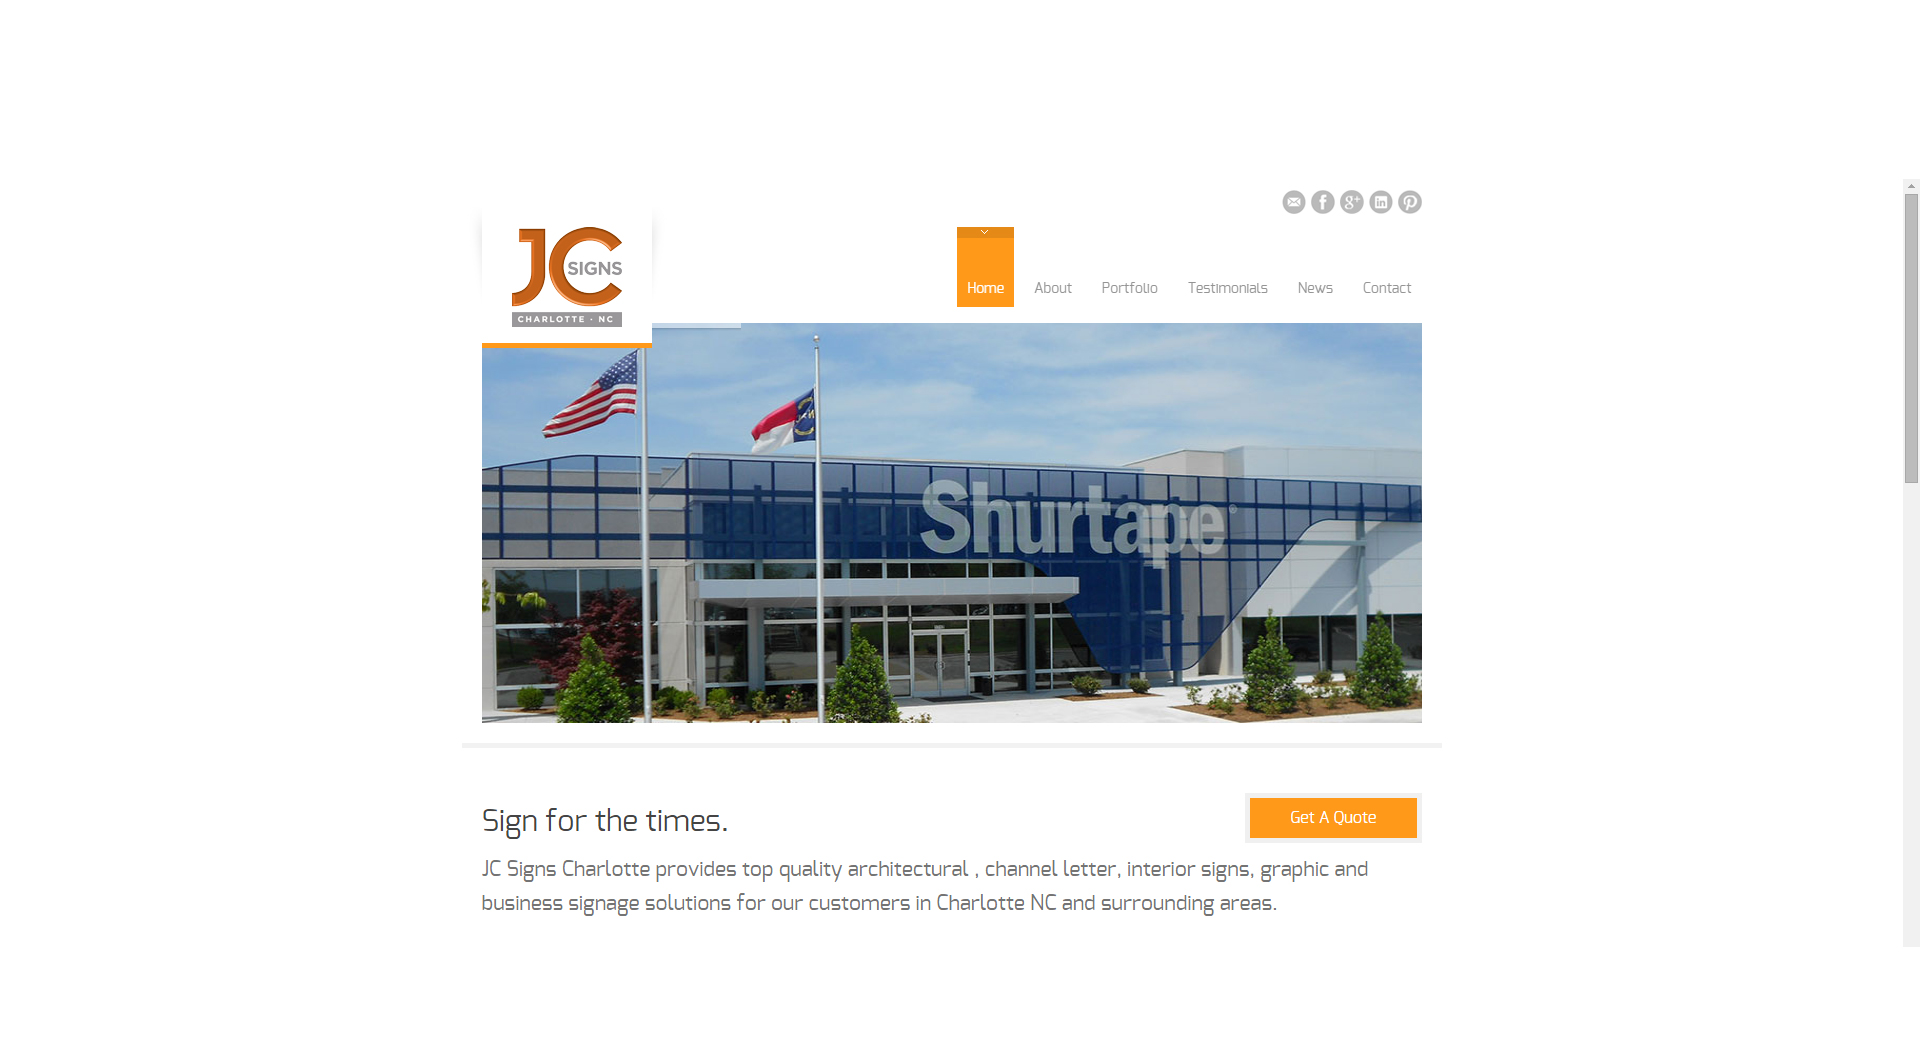 Website Design By Ccp Web Design Jc Signs Charlotte